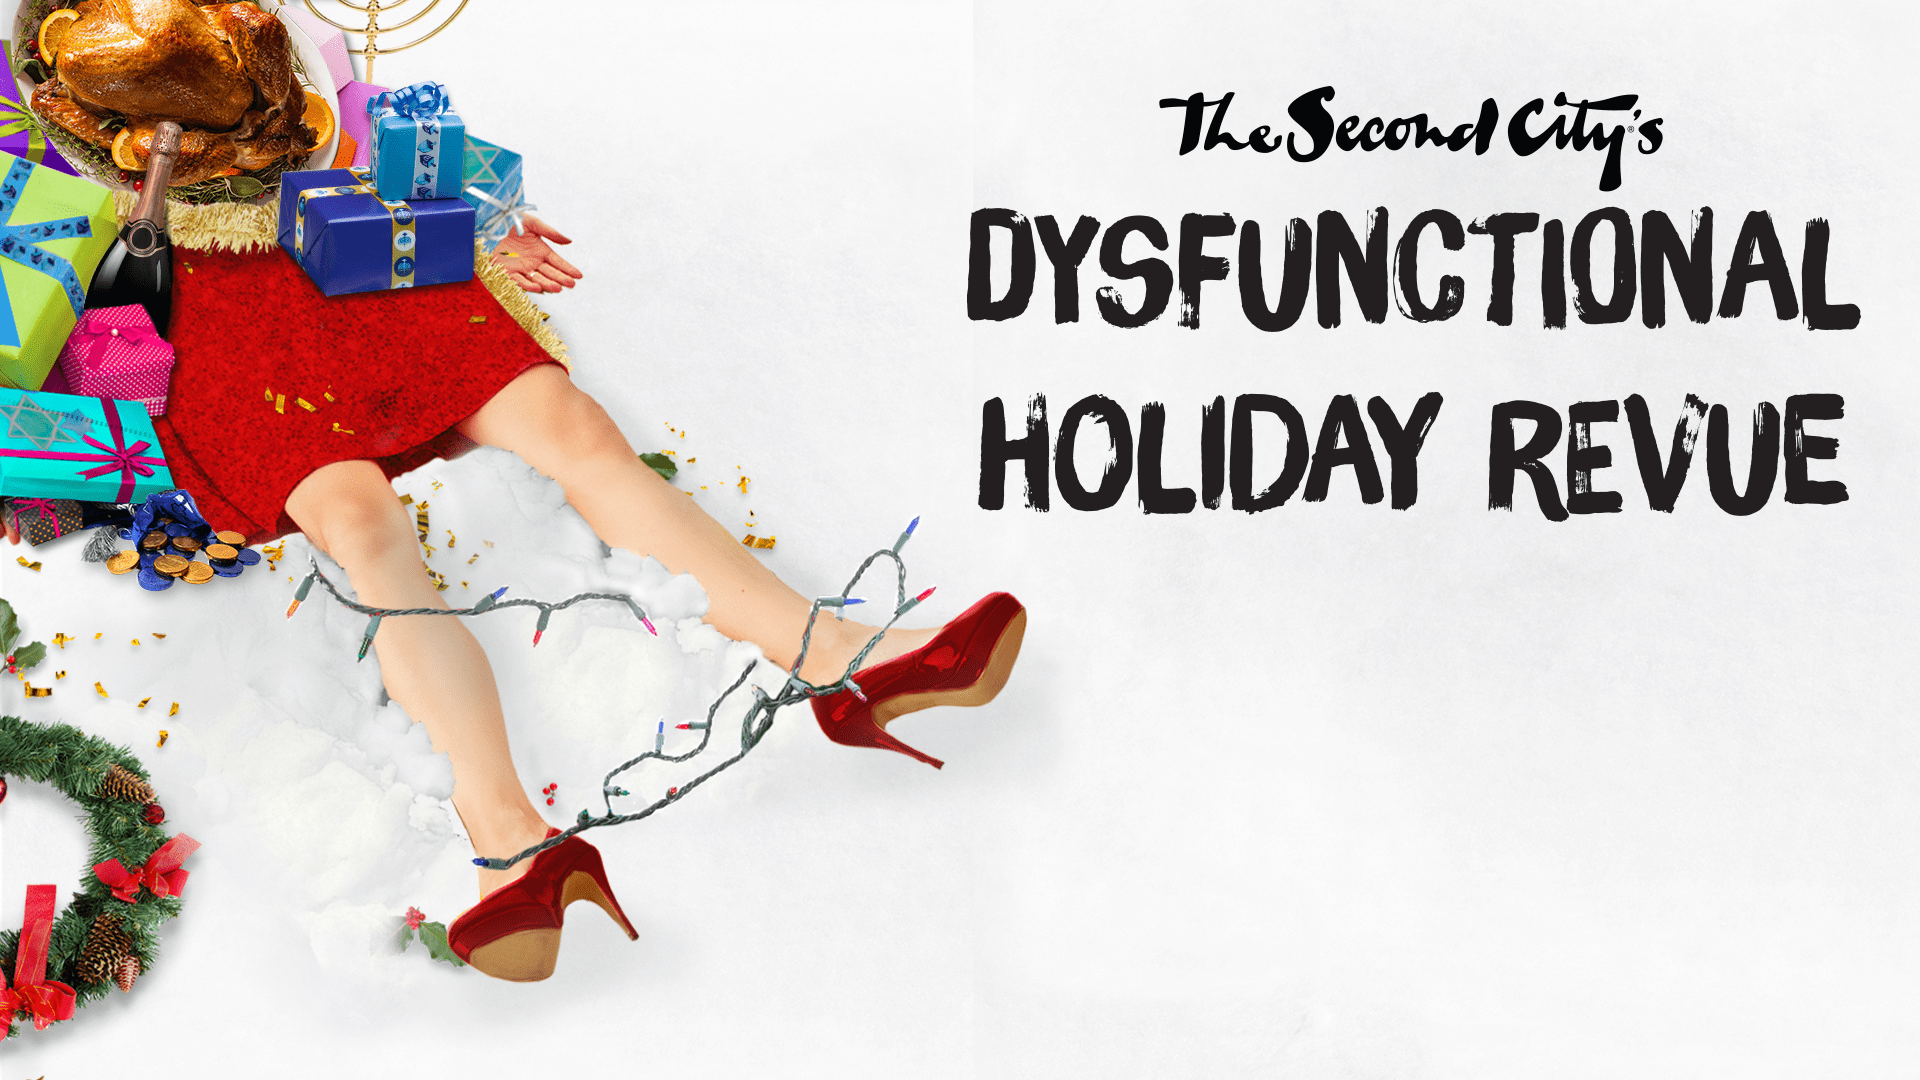 dysfunctional holiday revue schedule the second city